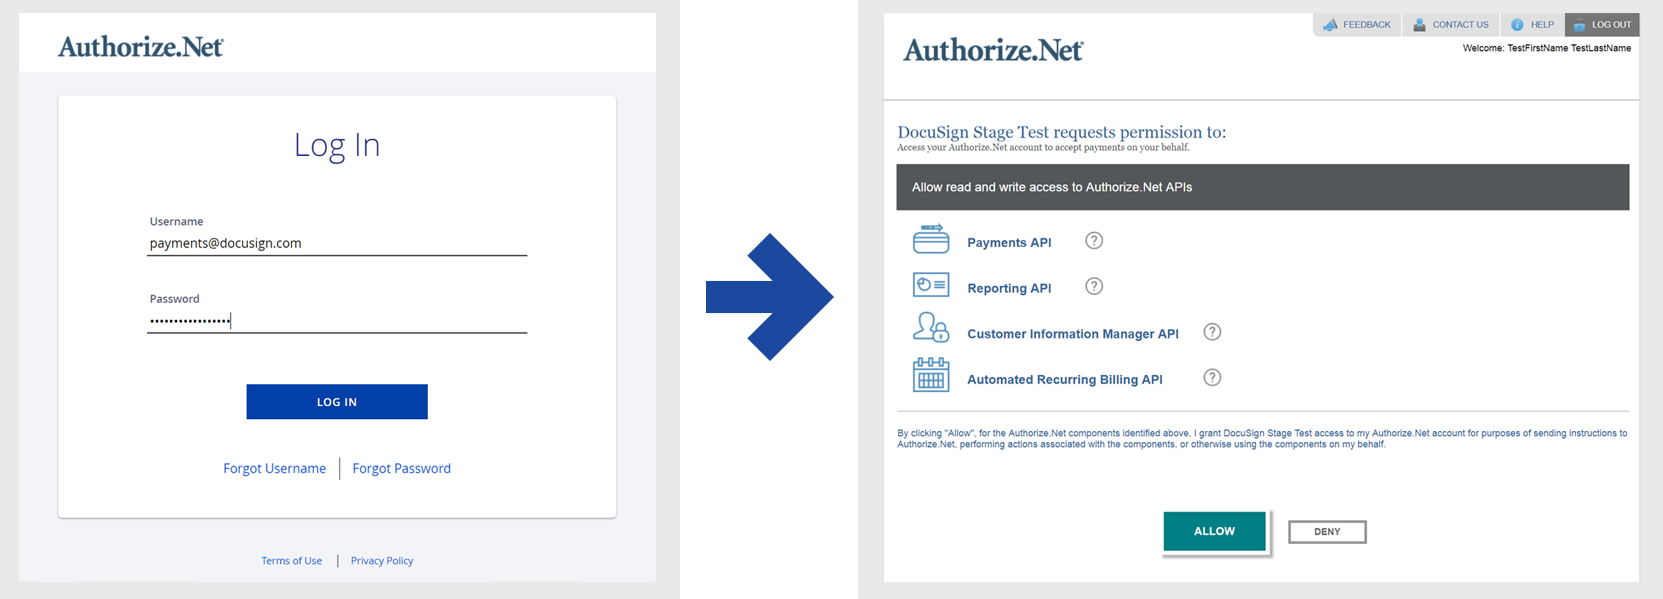 Connect to your Authorize.Net account